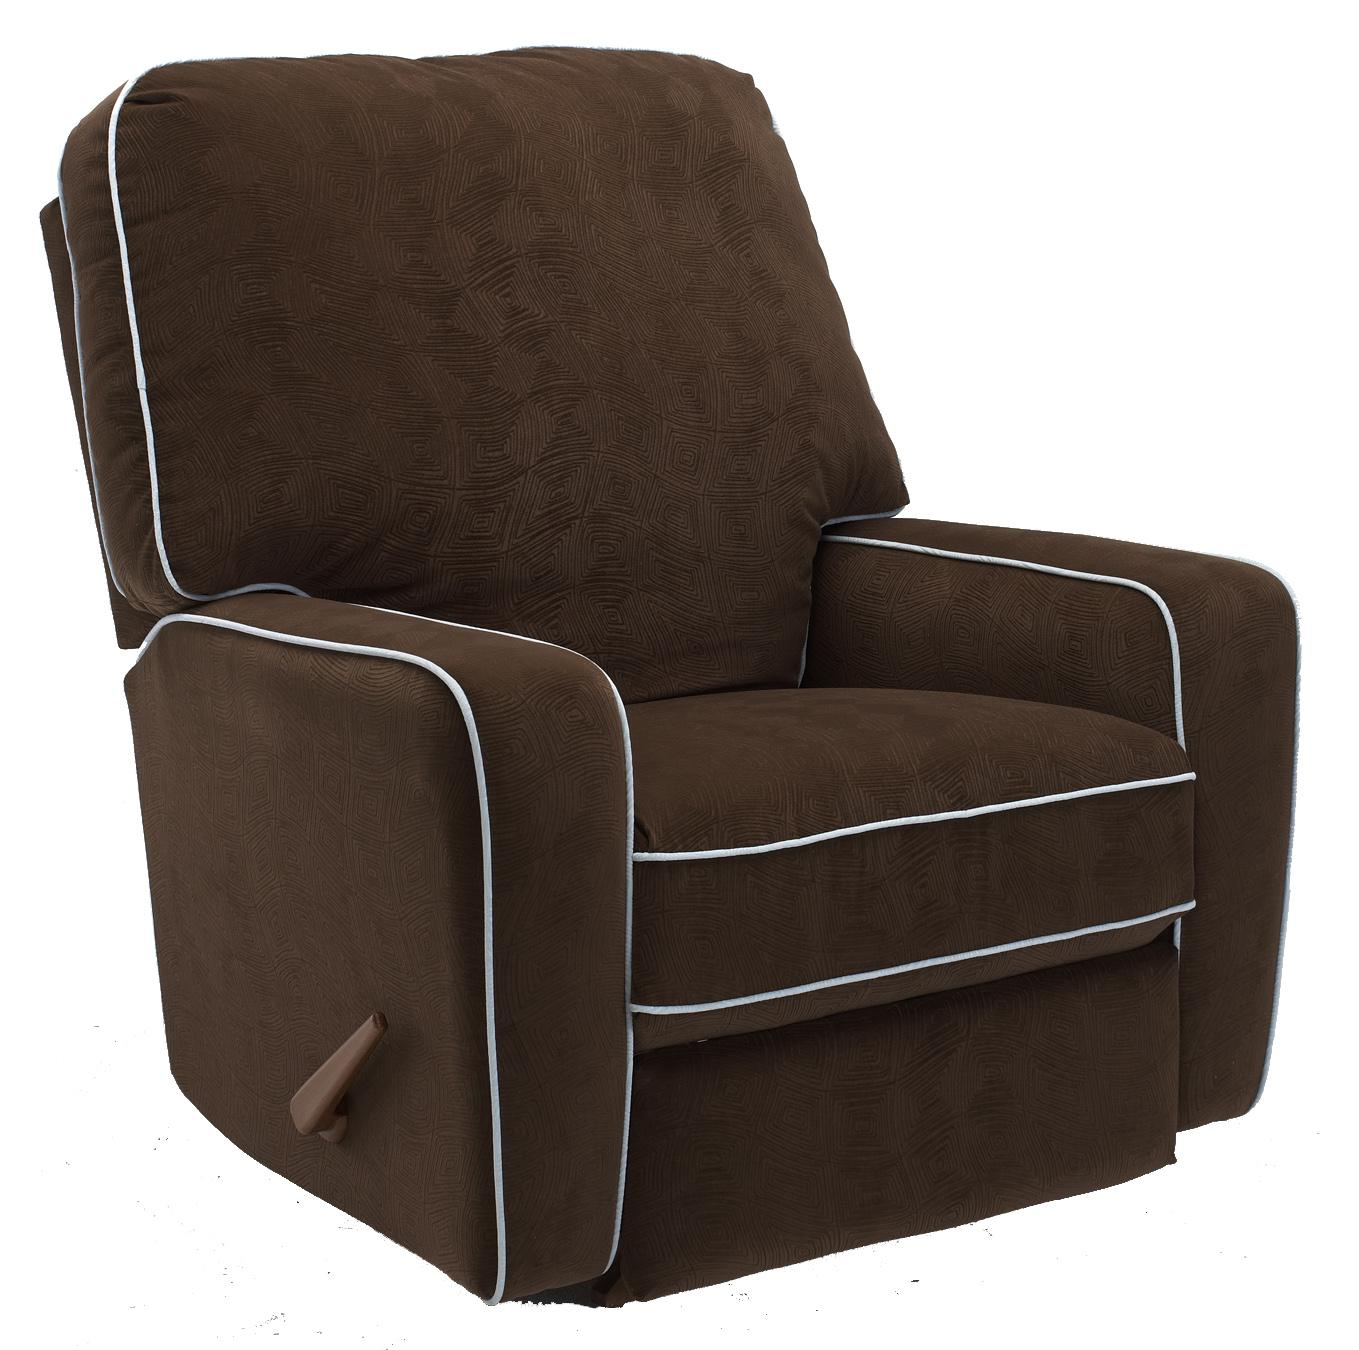 Best Home Furnishings Recliners - Medium Bilana Wallhugger Recliner - Item Number: 4MW54